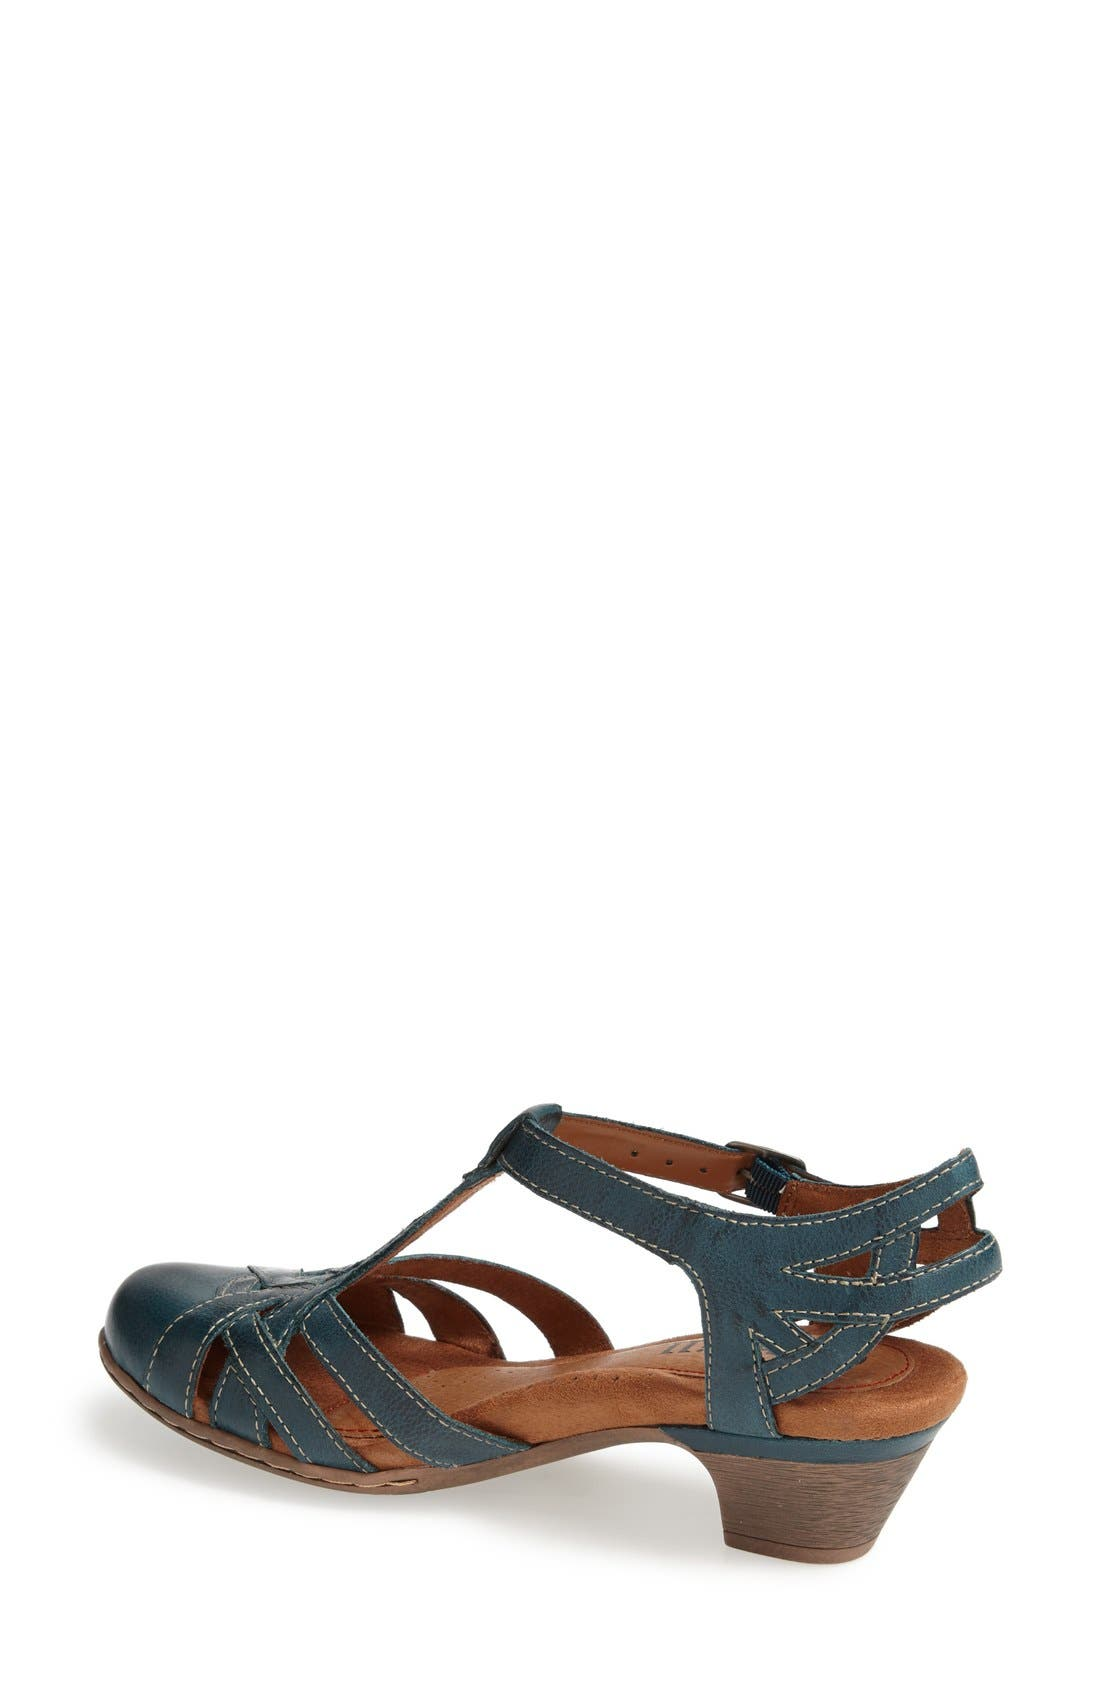 'Aubrey' Sandal,                             Alternate thumbnail 26, color,